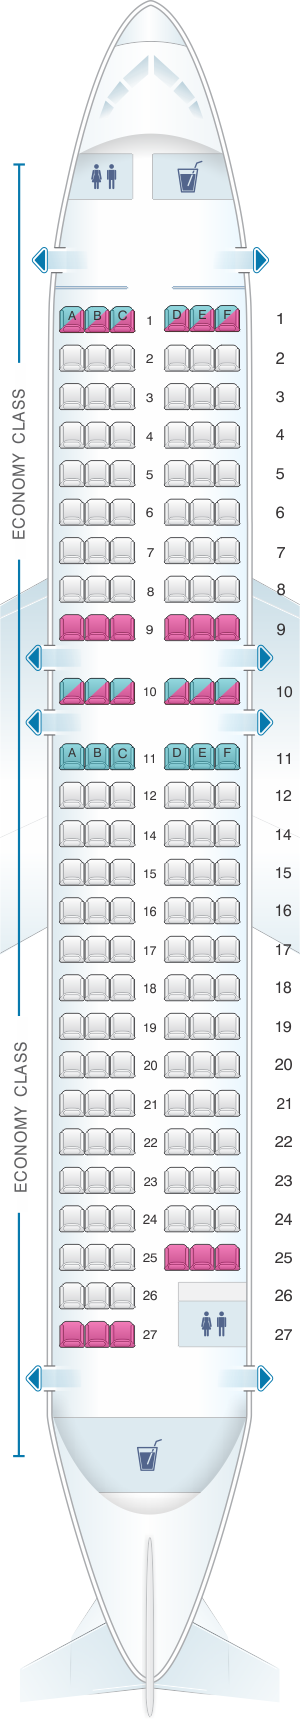 Seat map for VIM Airlines Airbus A319